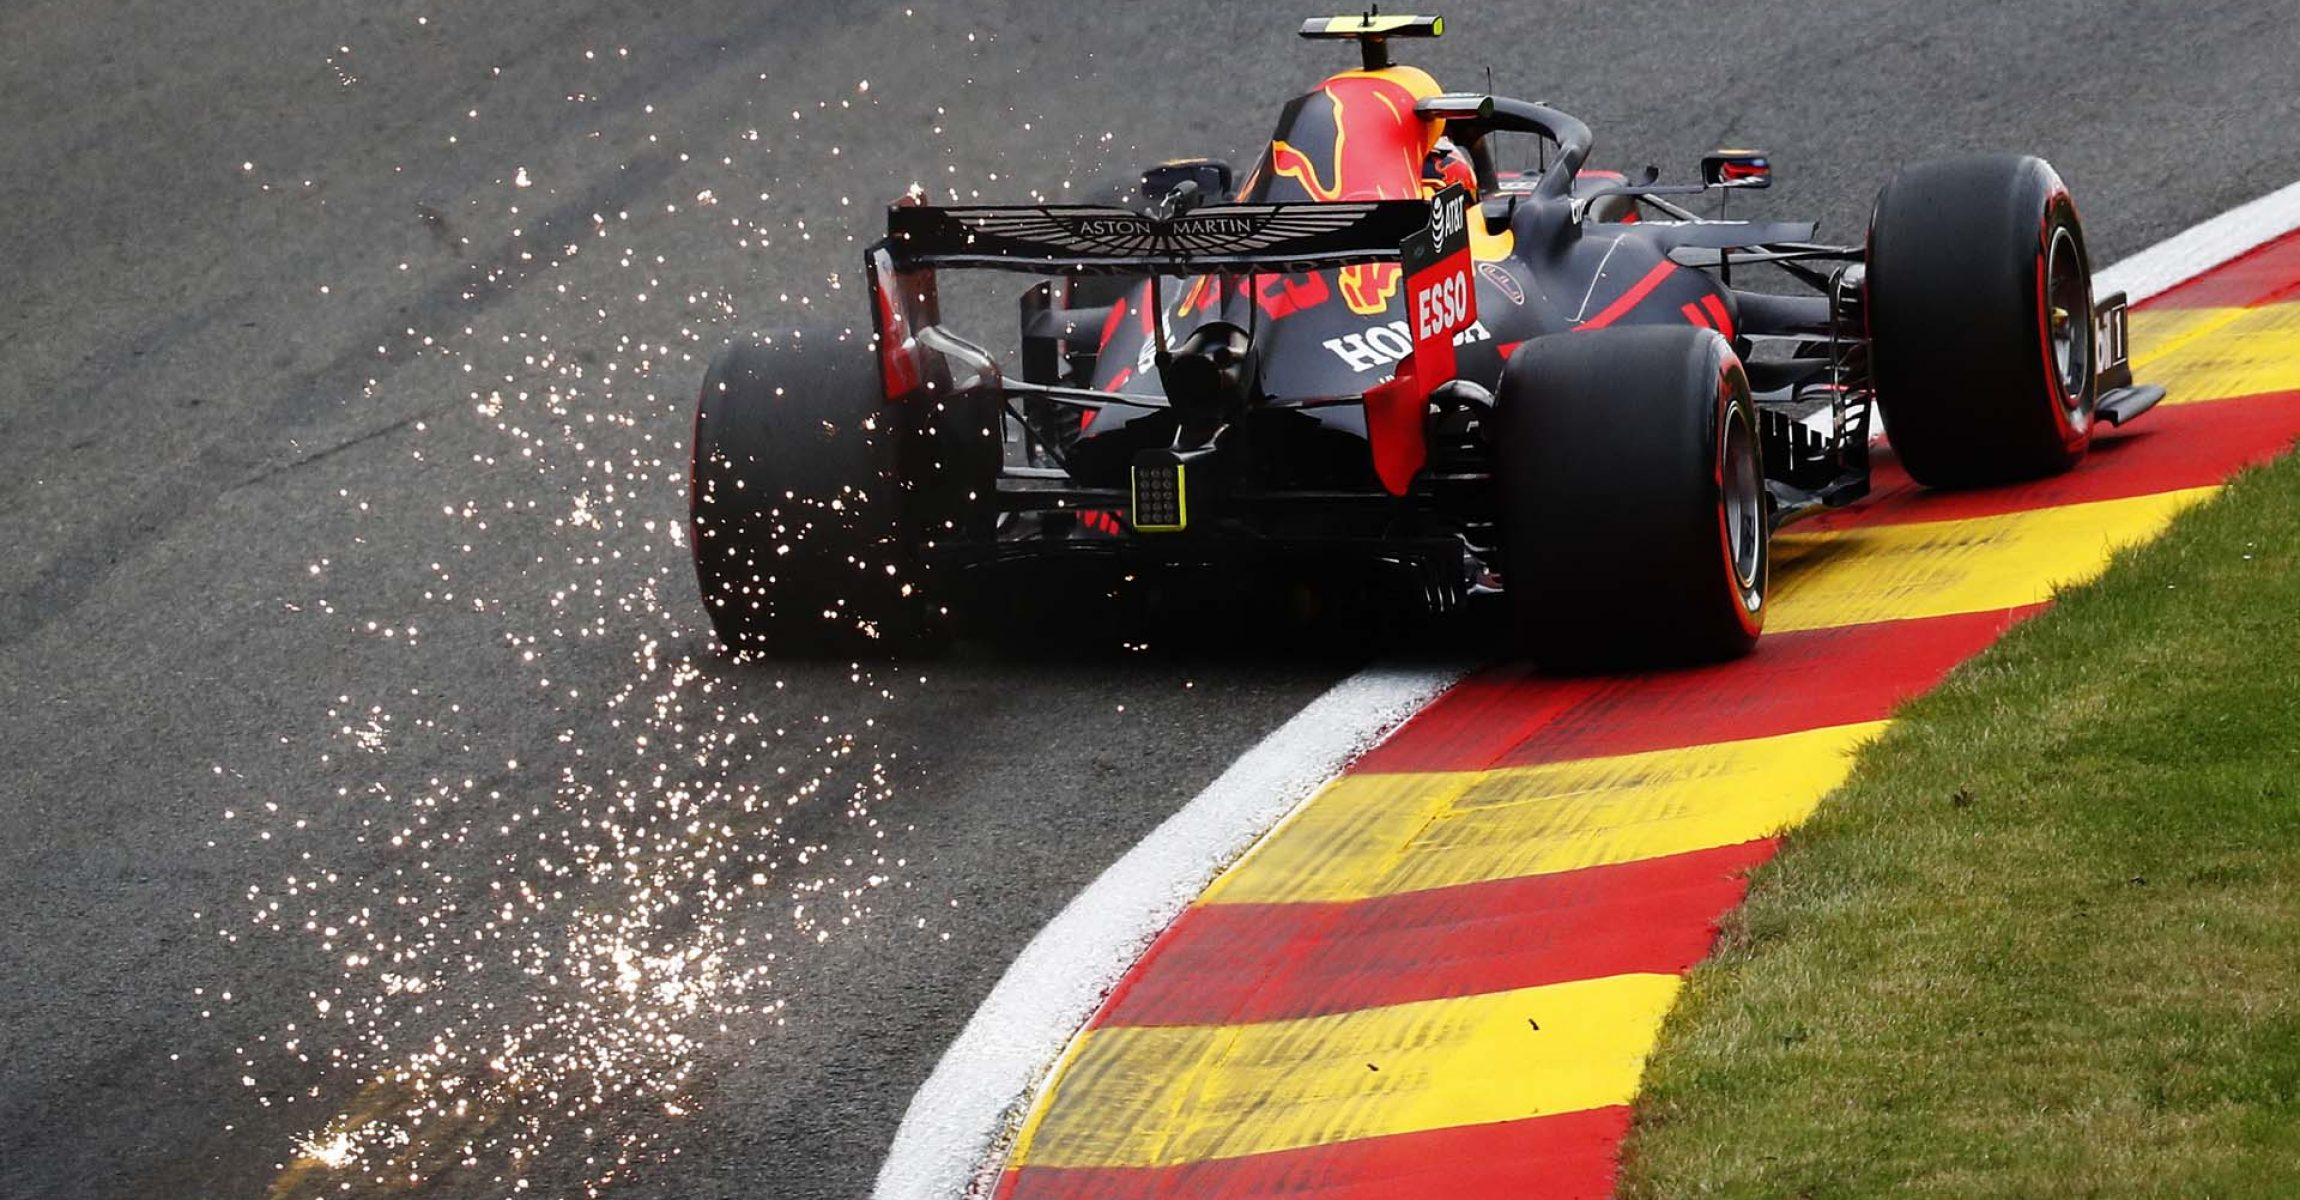 SPA, BELGIUM - AUGUST 28: Alexander Albon of Thailand driving the (23) Aston Martin Red Bull Racing RB16 on track during practice for the F1 Grand Prix of Belgium at Circuit de Spa-Francorchamps on August 28, 2020 in Spa, Belgium. (Photo by Francois Lenoir/Pool via Getty Images)